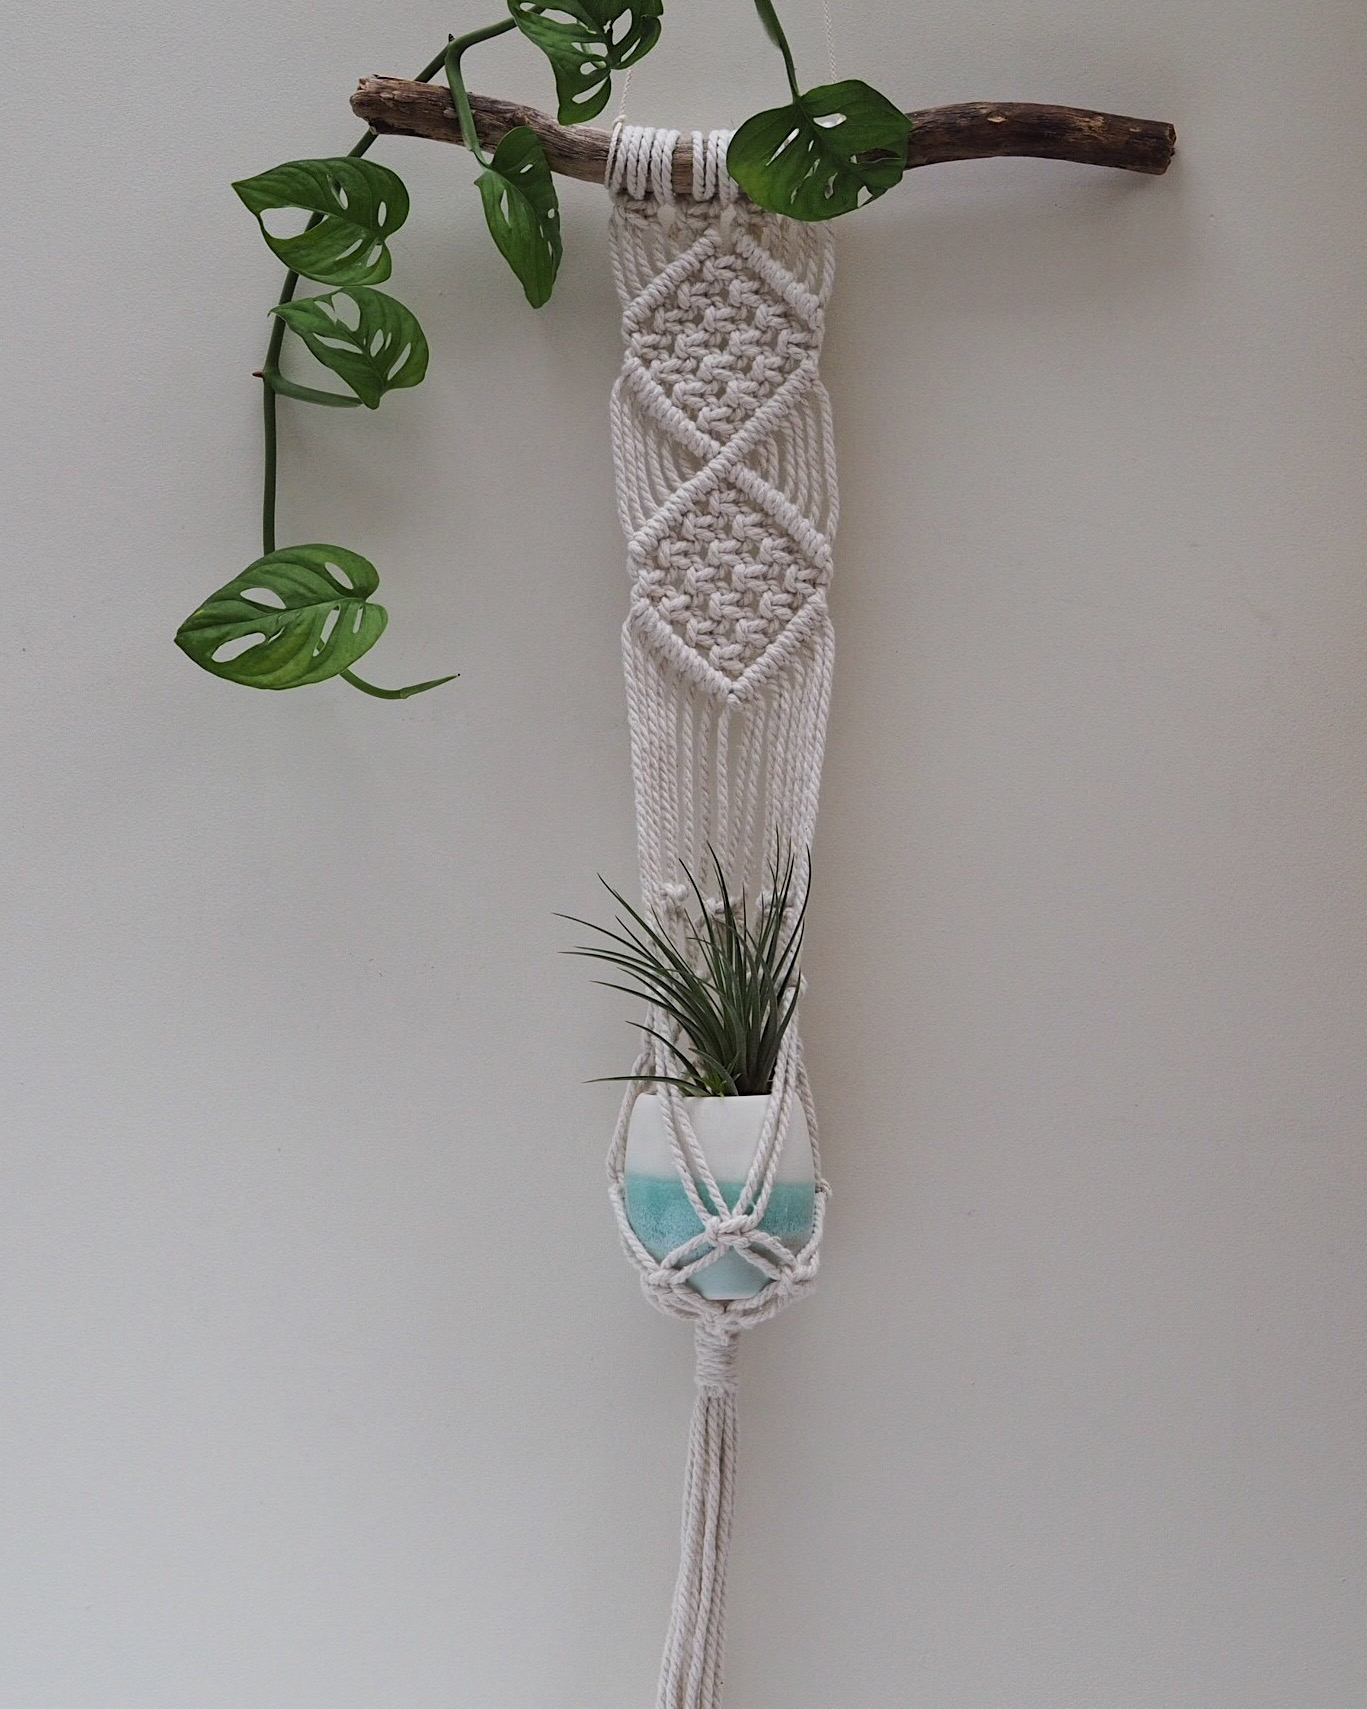 #createinsummer collaborative prize - macrame planter with turquoise ombre plant pot from @_twome and @ceramicmagpie